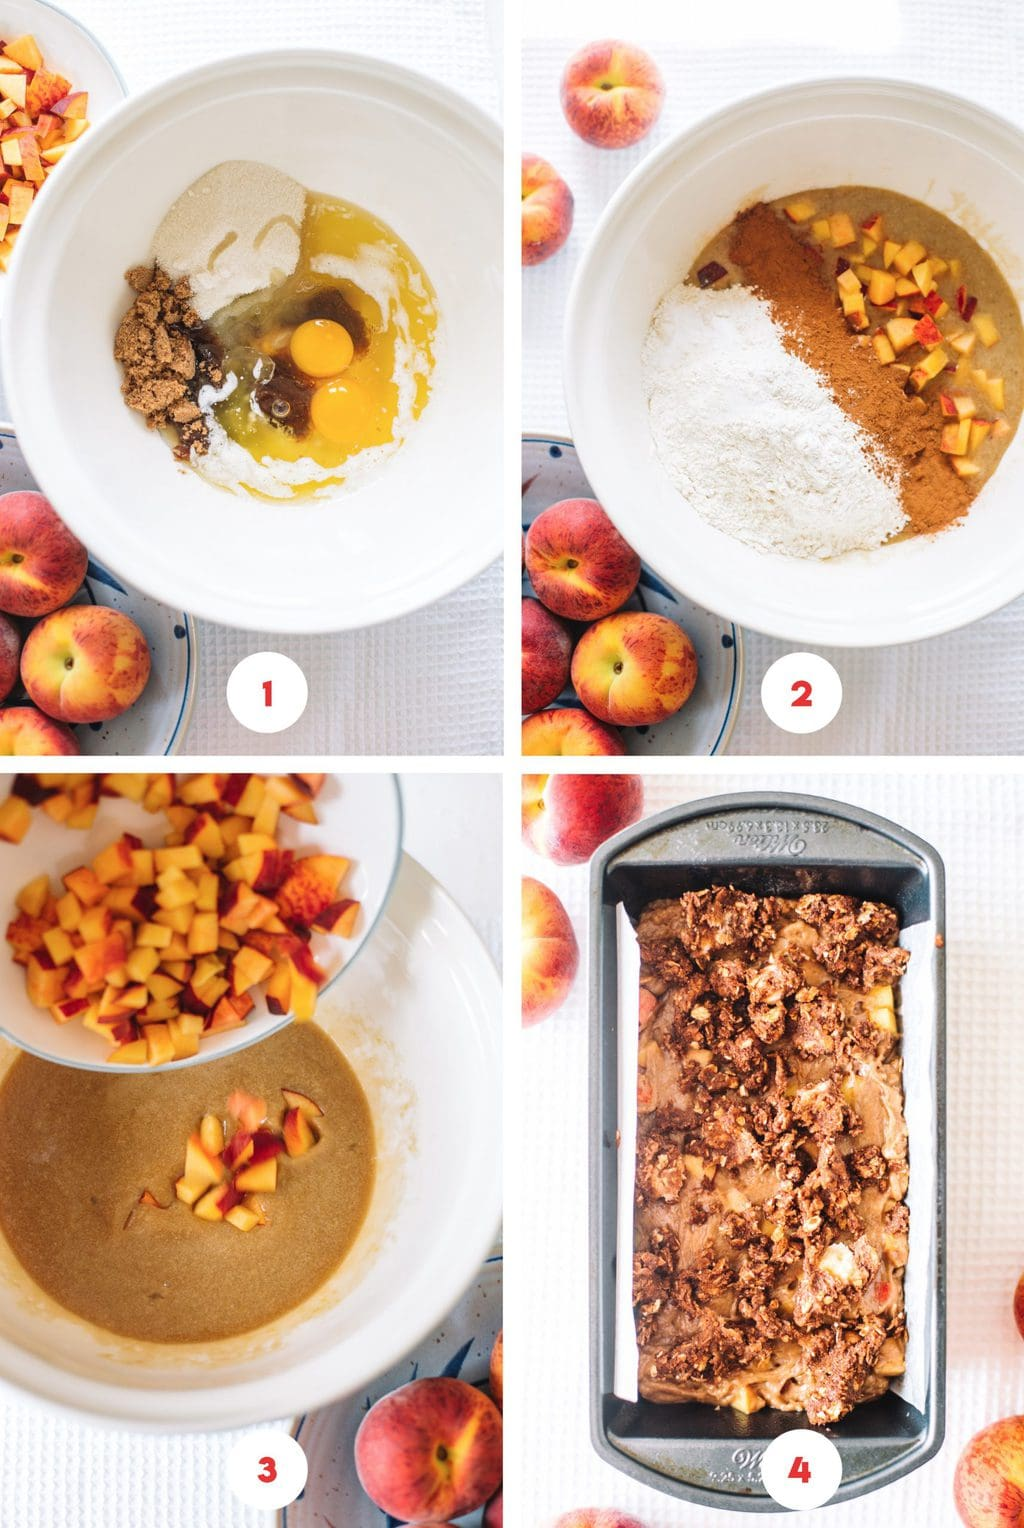 Step by step process on how to make peach bread.